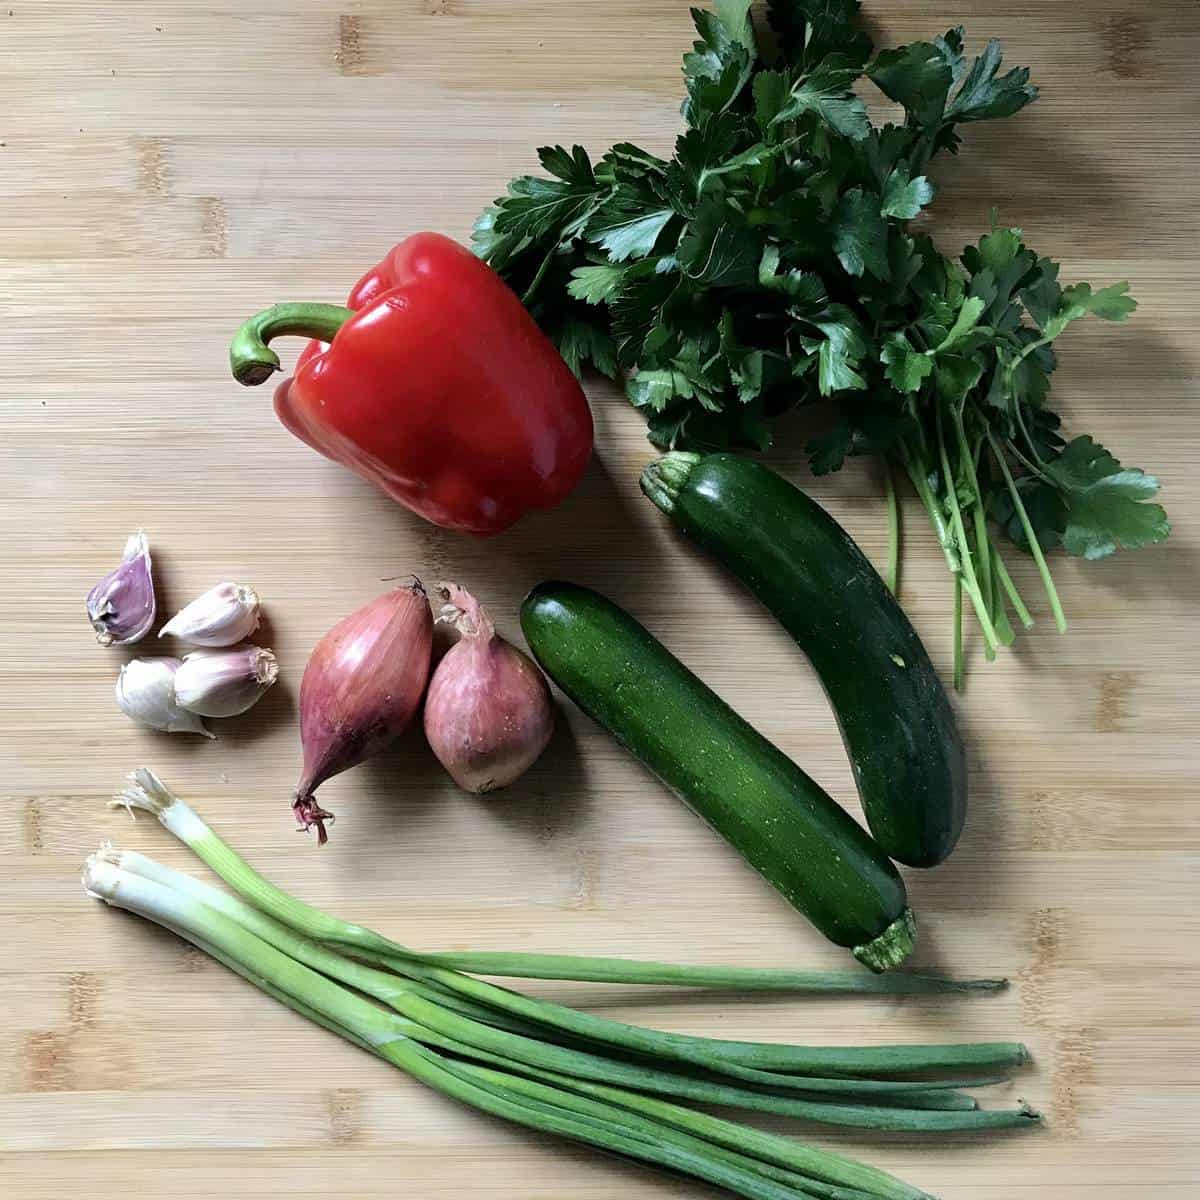 Different vegetables on a wooden board.